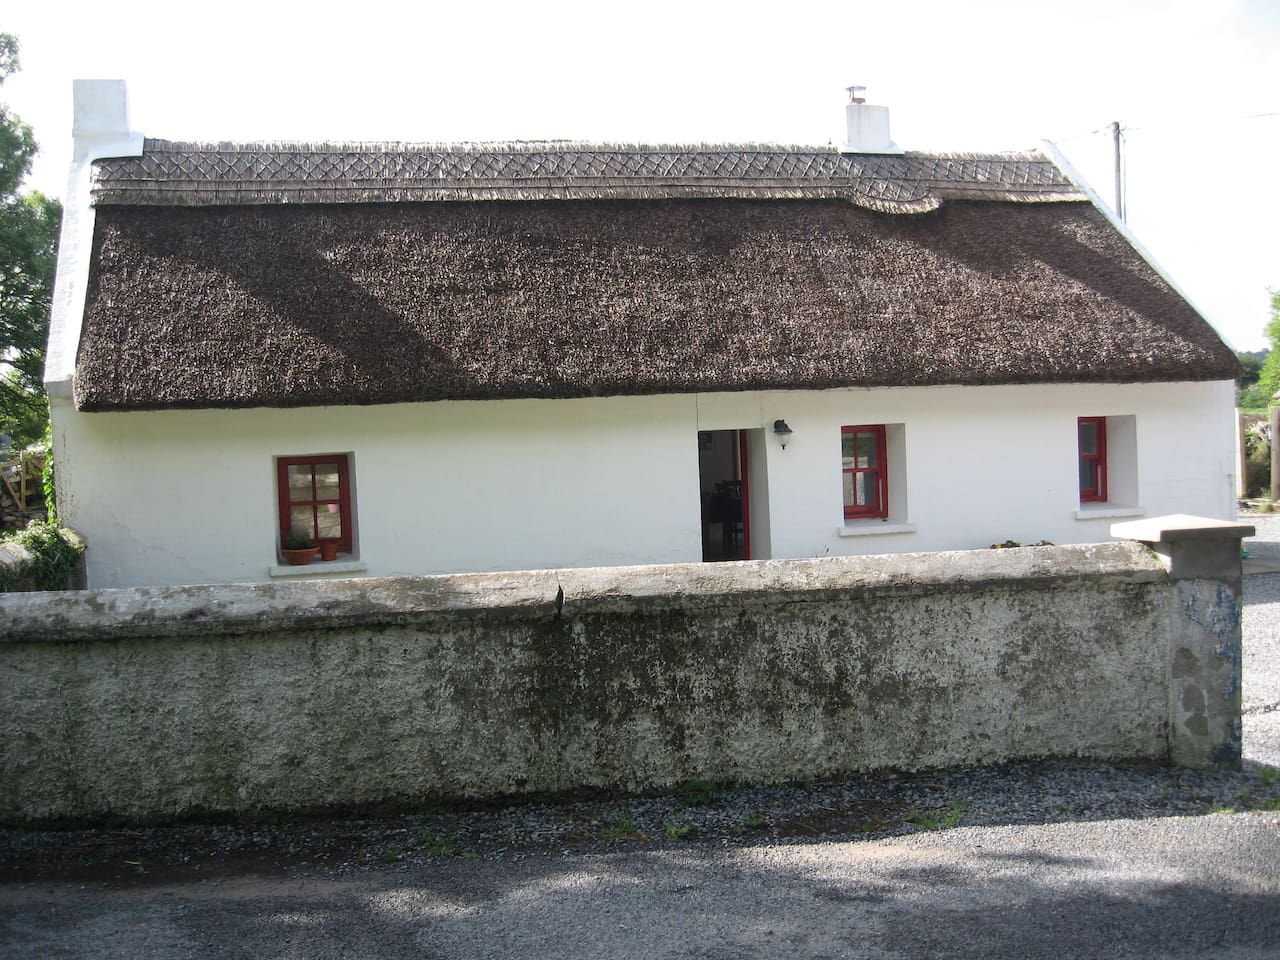 Sleep in a real thatched cottage in Ireland